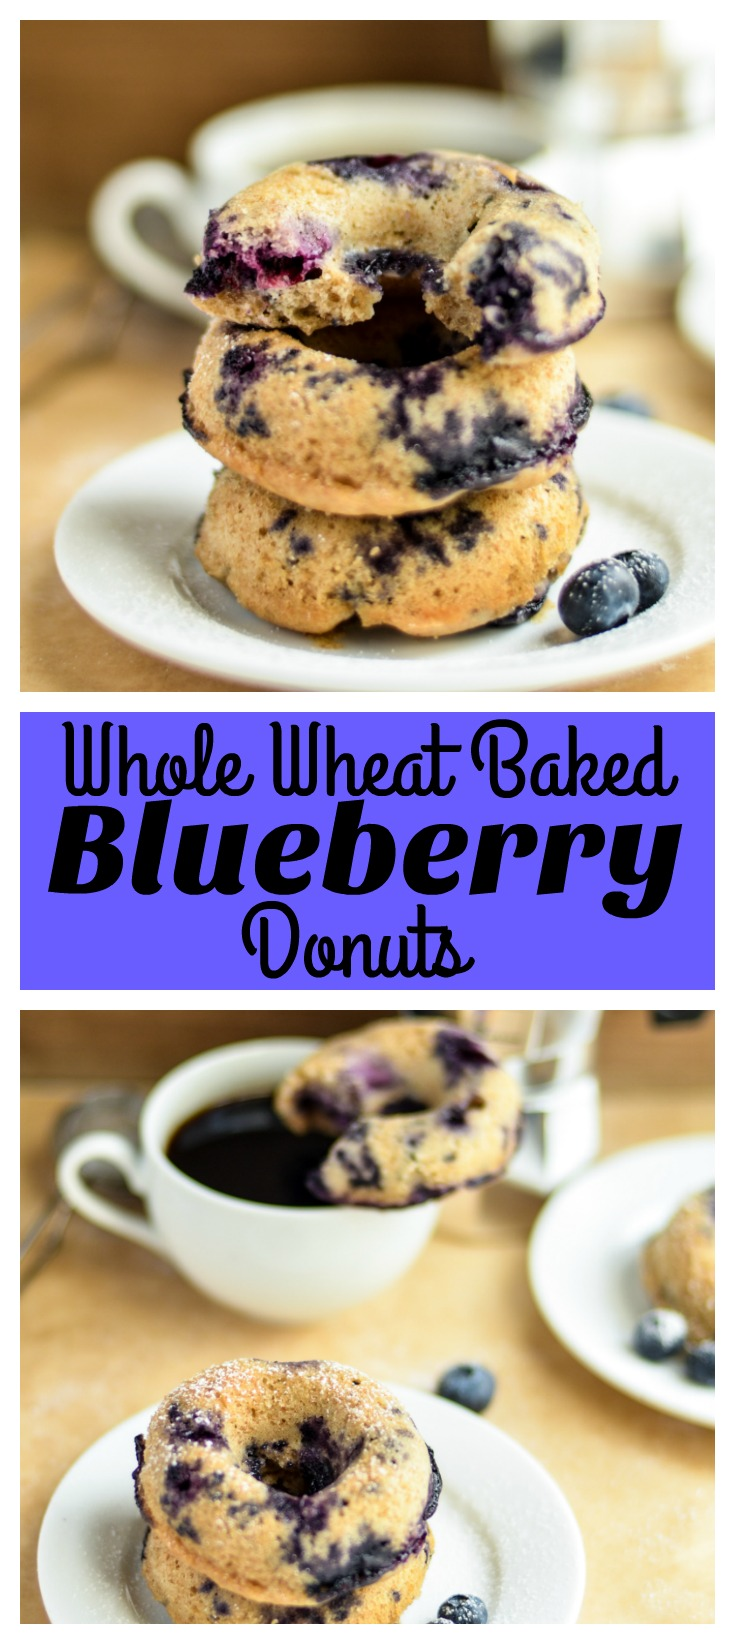 Whole Wheat Baked Blueberry Donuts Recipes